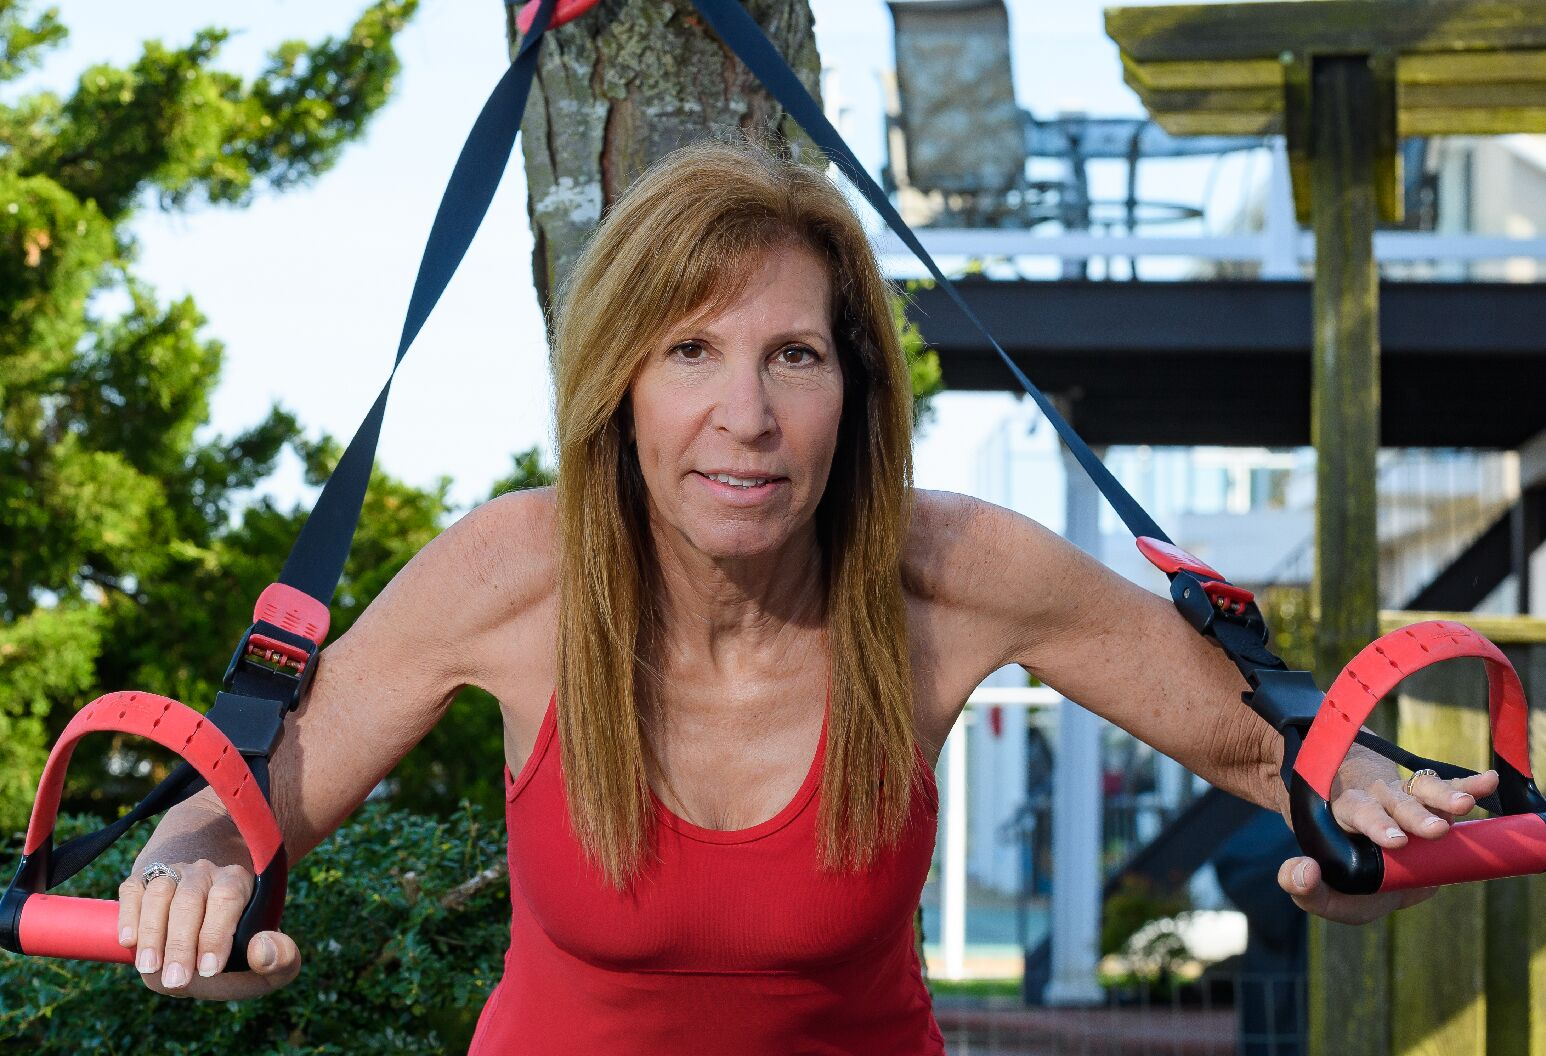 image of Bobbie Arnel, personal trainer